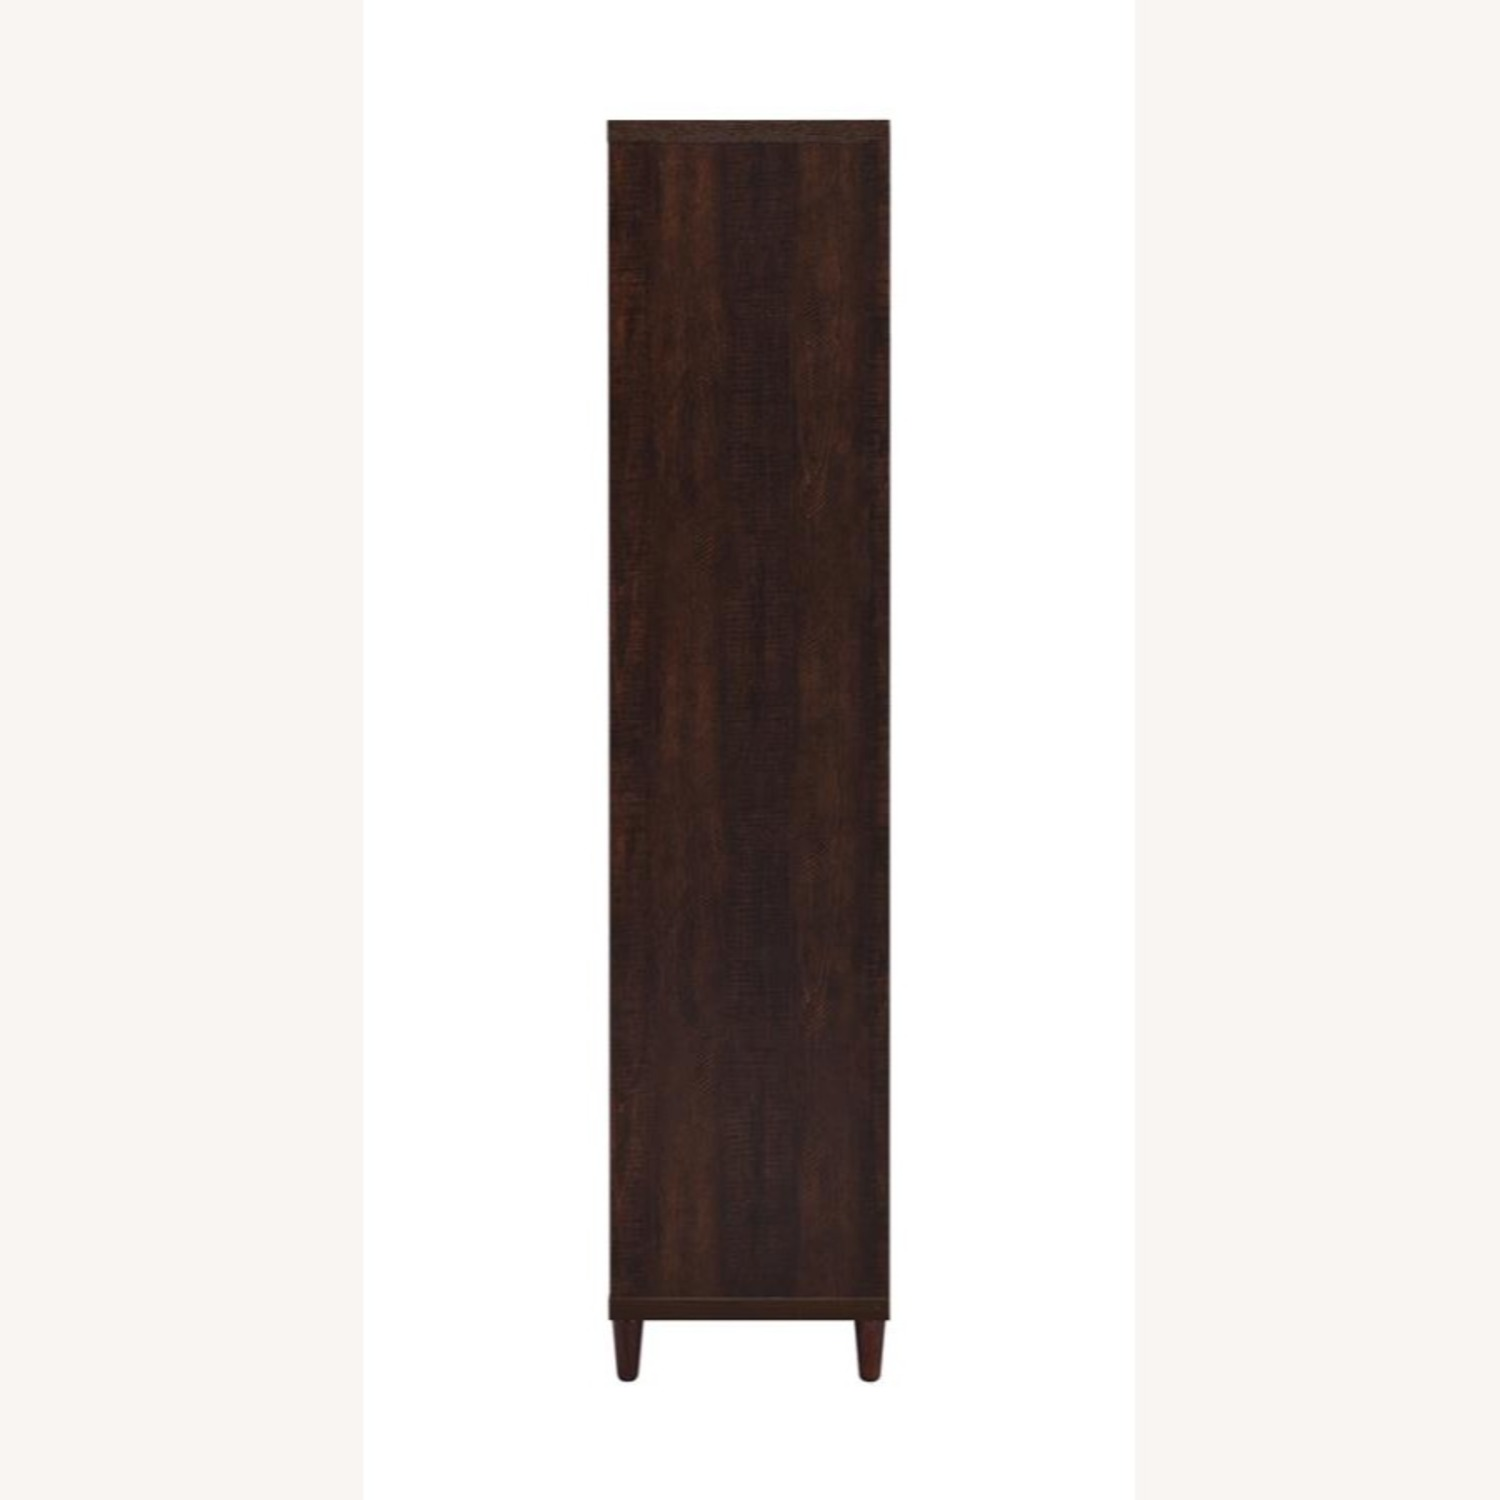 Accent Cabinet In Rich Rustic Tobacco Finish - image-4